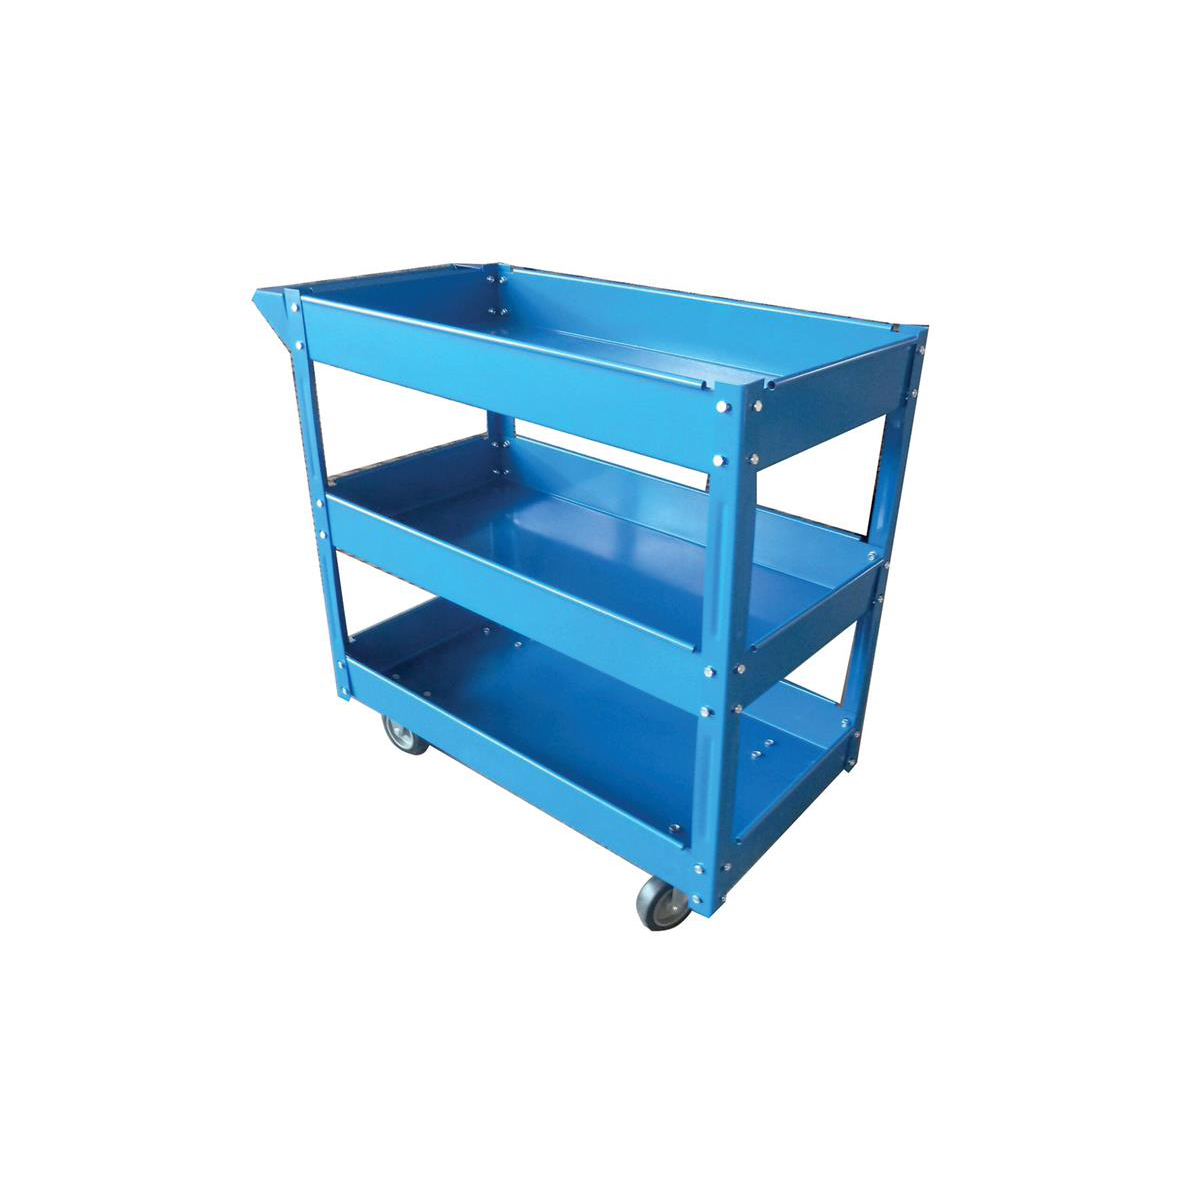 Trolleys or accessories 5 Star Facilities serving Trolley 3 Tier W460xD865xH840mm Blue